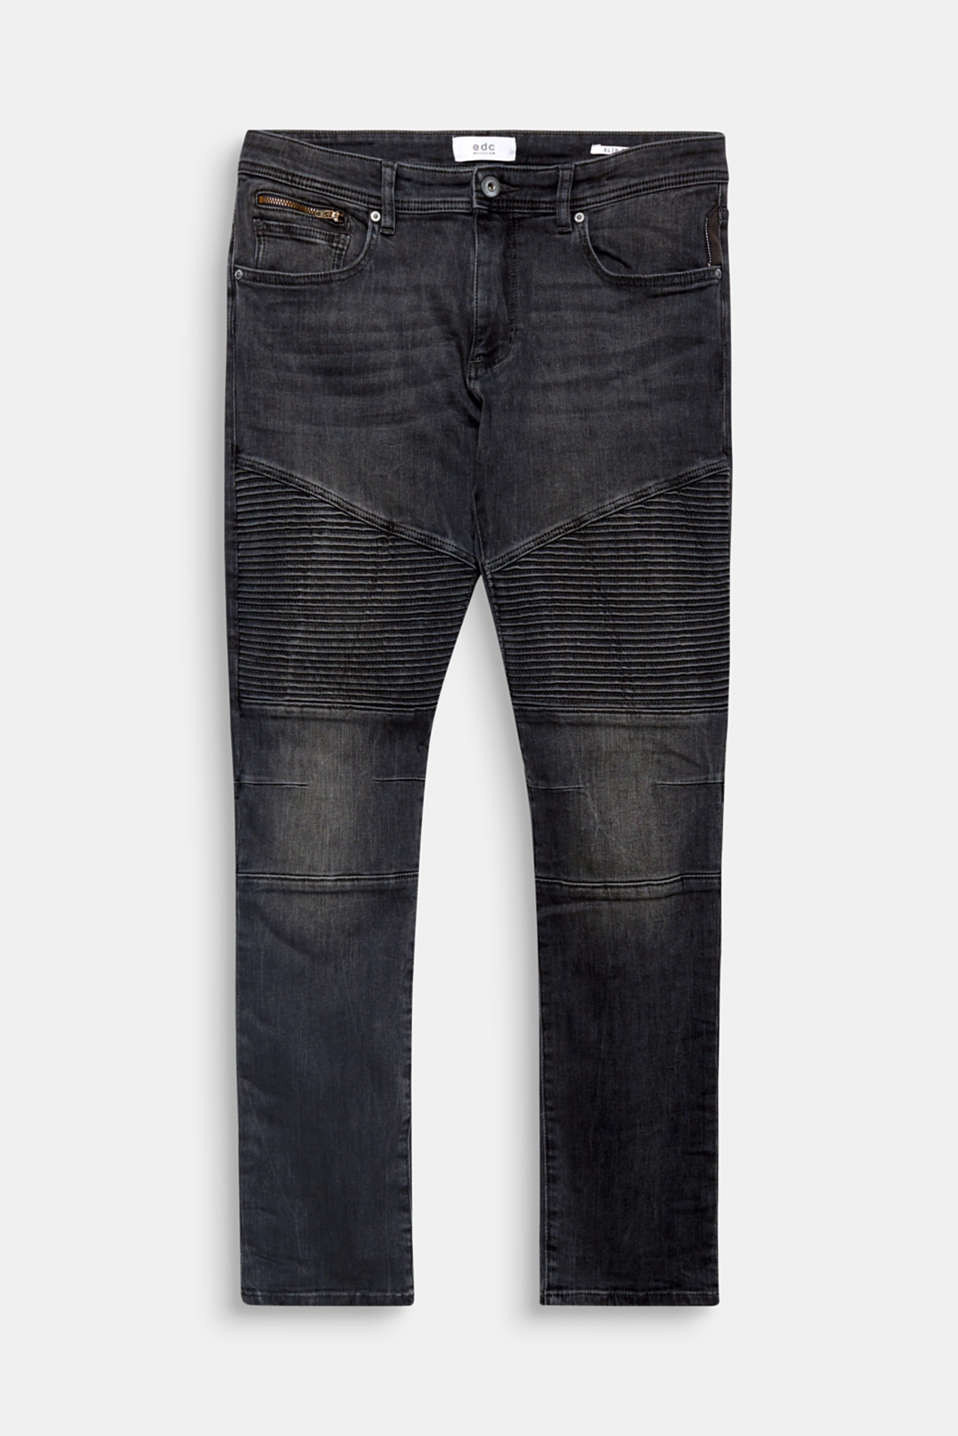 The distinctive biker stitching and the authentic washed-out effects give these jeans with a percentage of stretch their characteristic look.